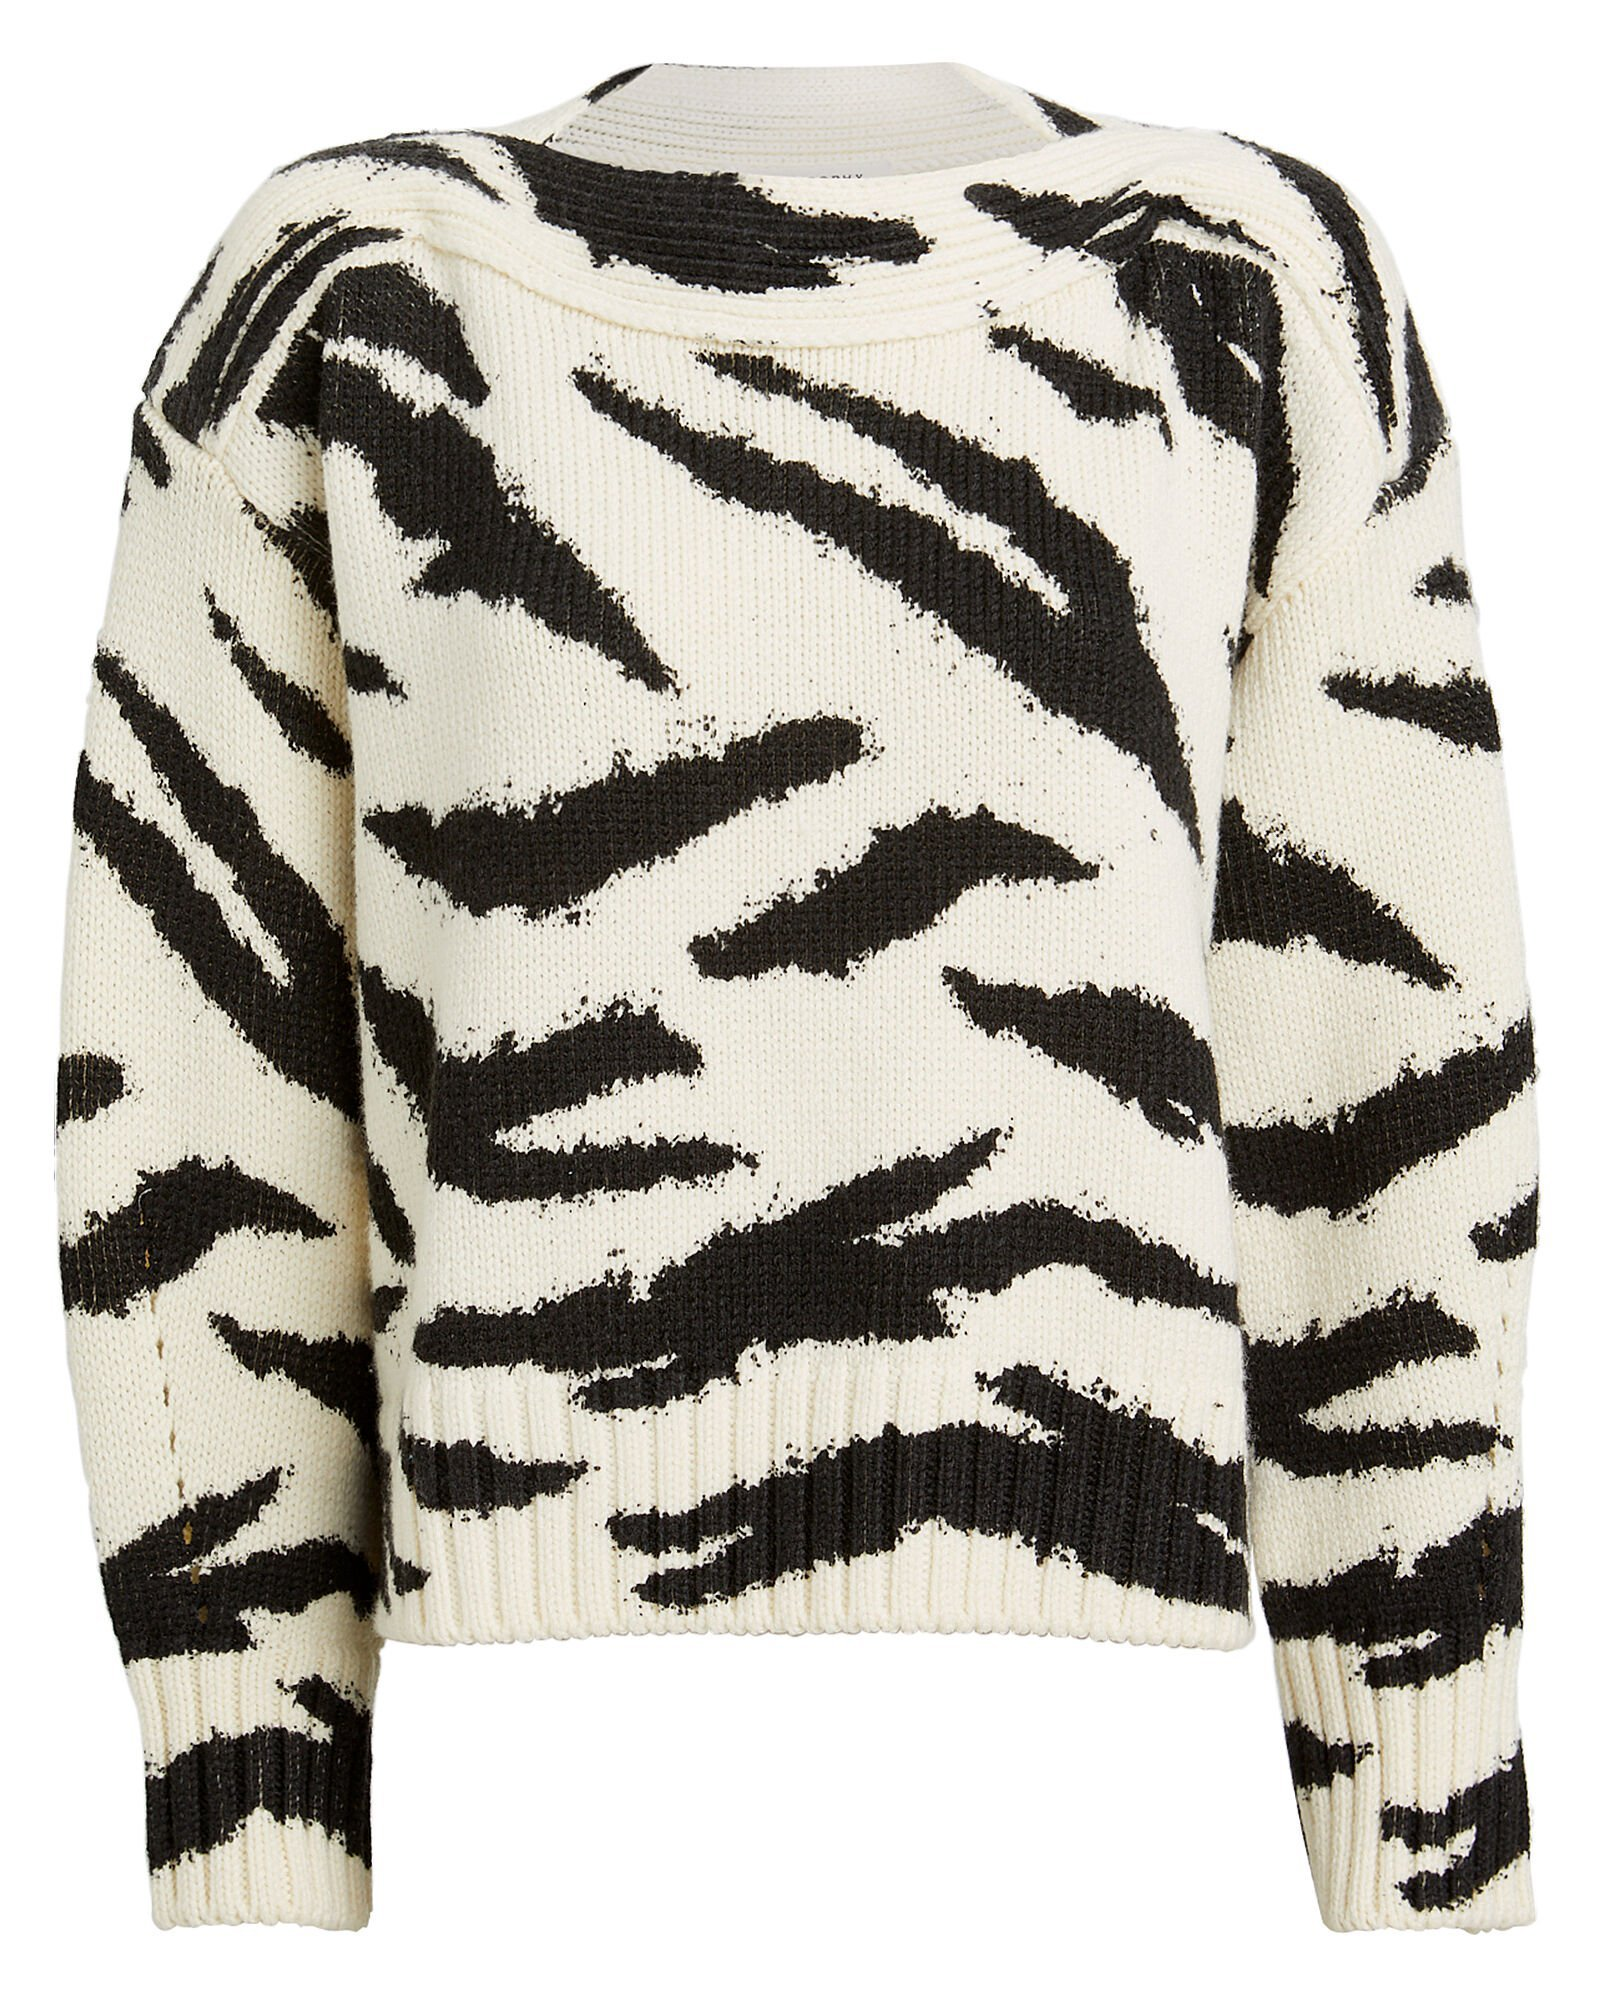 Zebra Merino Wool Sweater